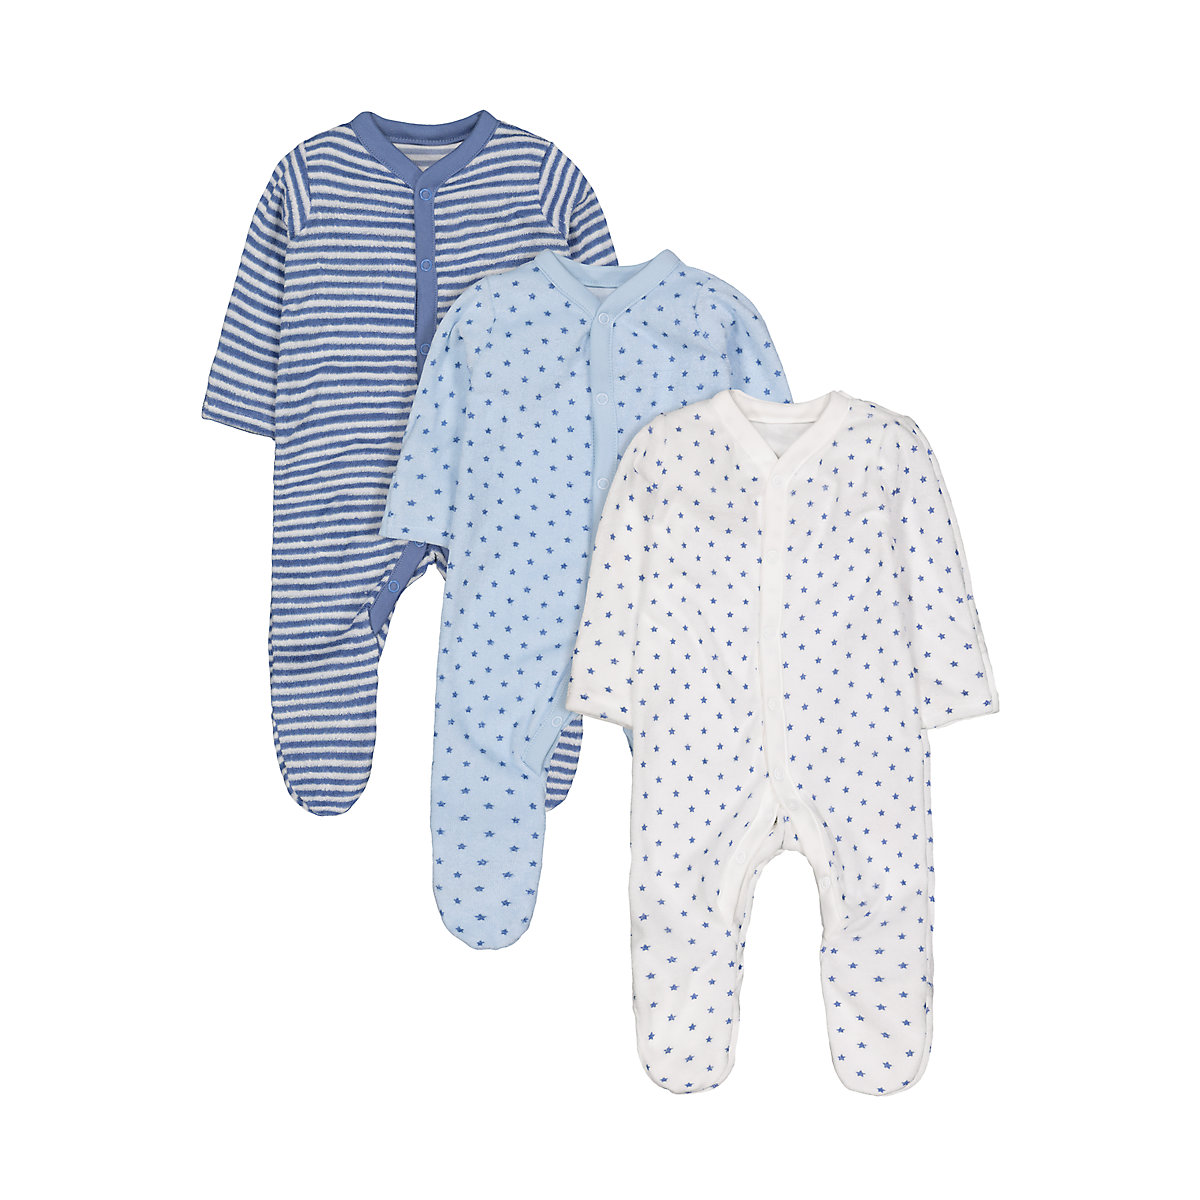 blue towelling sleepsuits - 3 pack